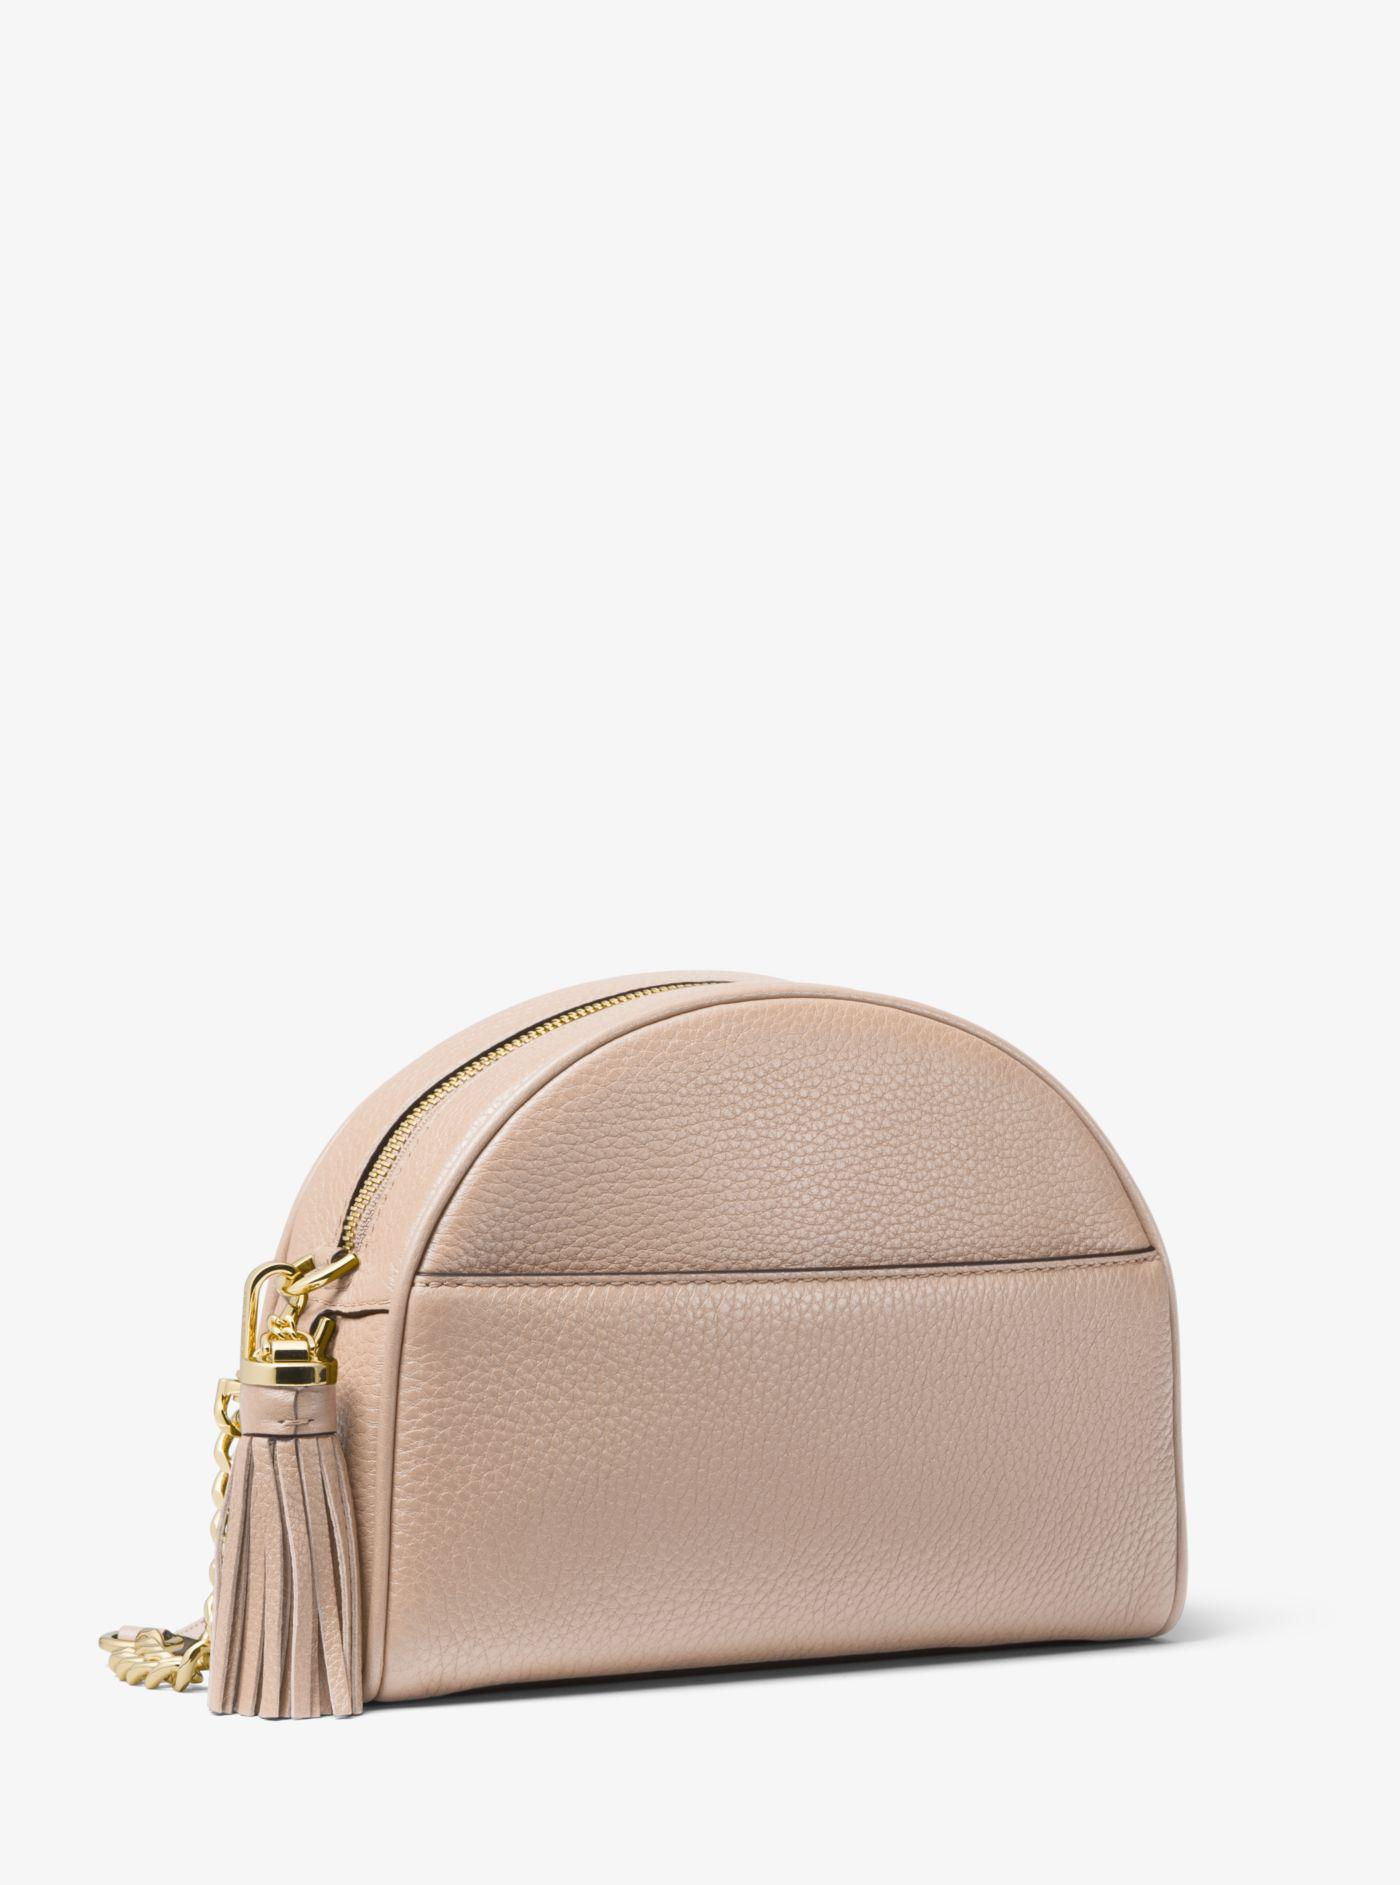 736f9a60100e Michael Kors Ginny Pebbled Leather Half-moon Crossbody in Pink - Lyst